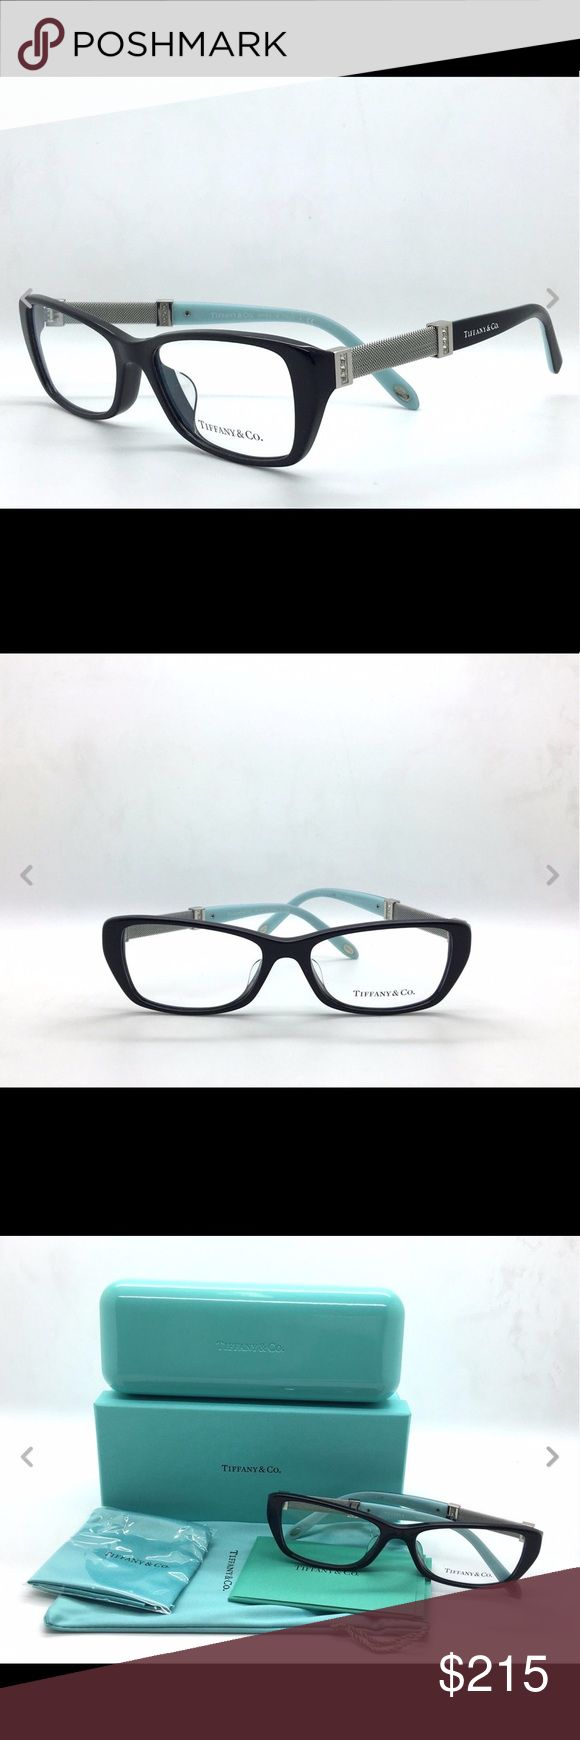 do oakley prescription glasses come with a case  tiffany & co prescription eyeglasses perfect condition. will come with case and lens cleaner wipe